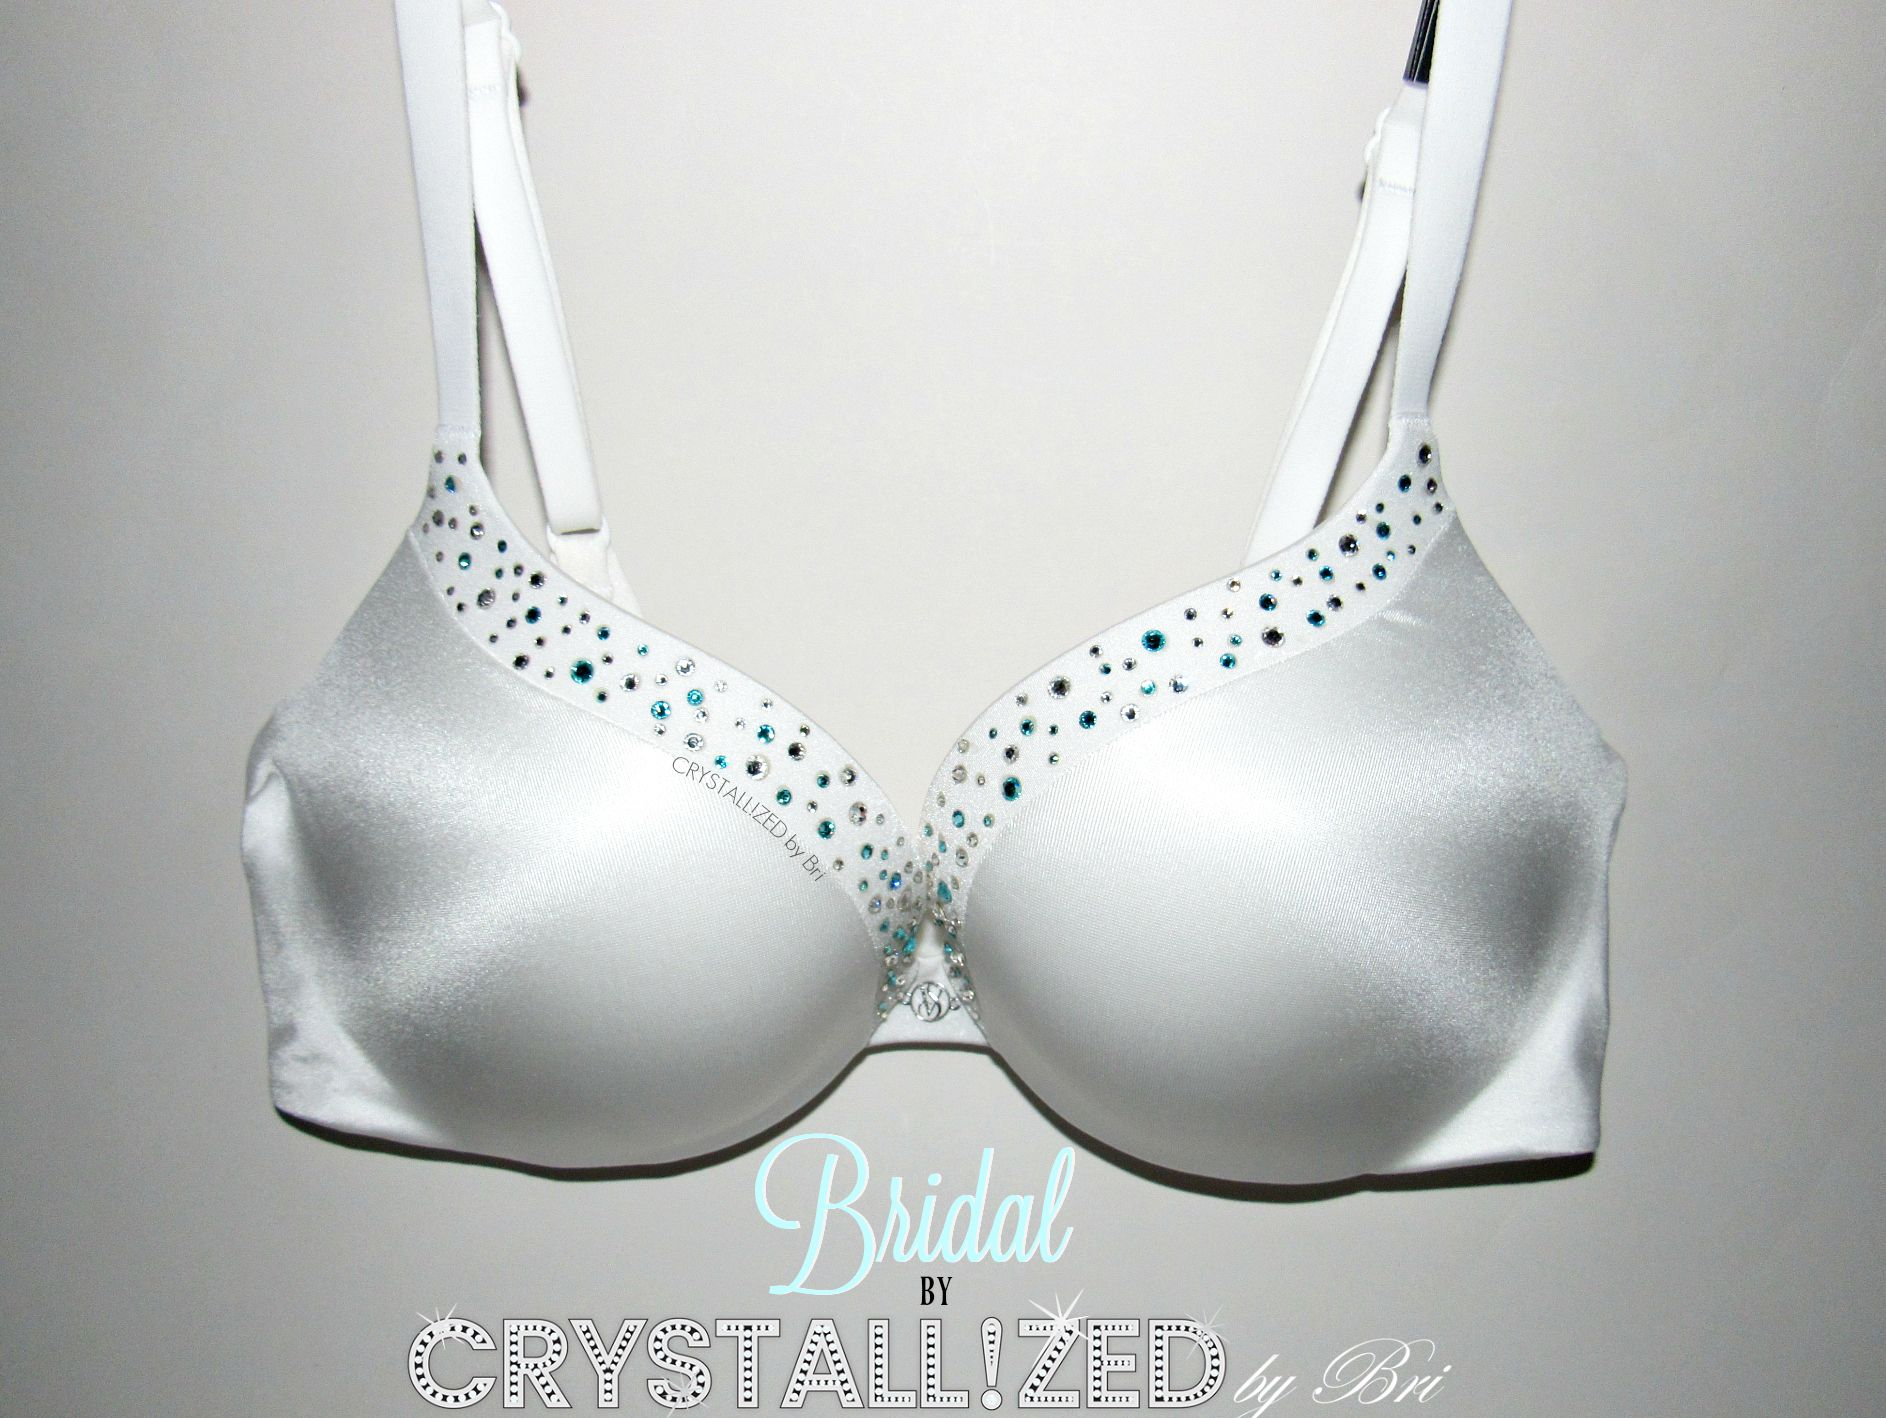 7a9d860c1a Buy Custom Crystallized Bling Bridal Wedding Night Push Up Bra Victoria s  Secret Made With Swarovski Crystals